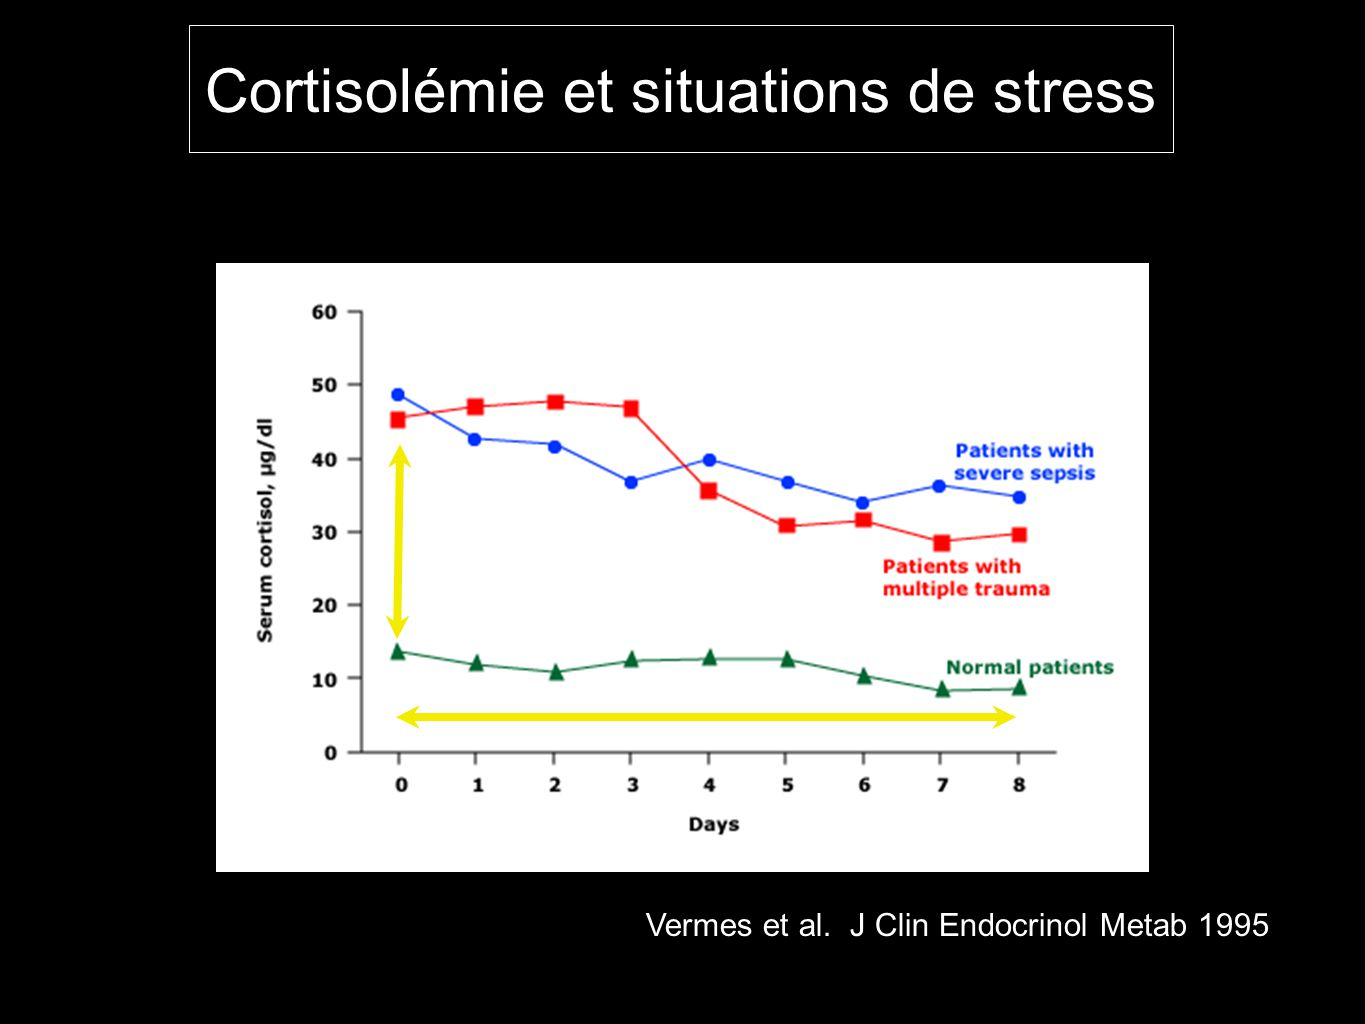 Cortisolémie et situations de stress